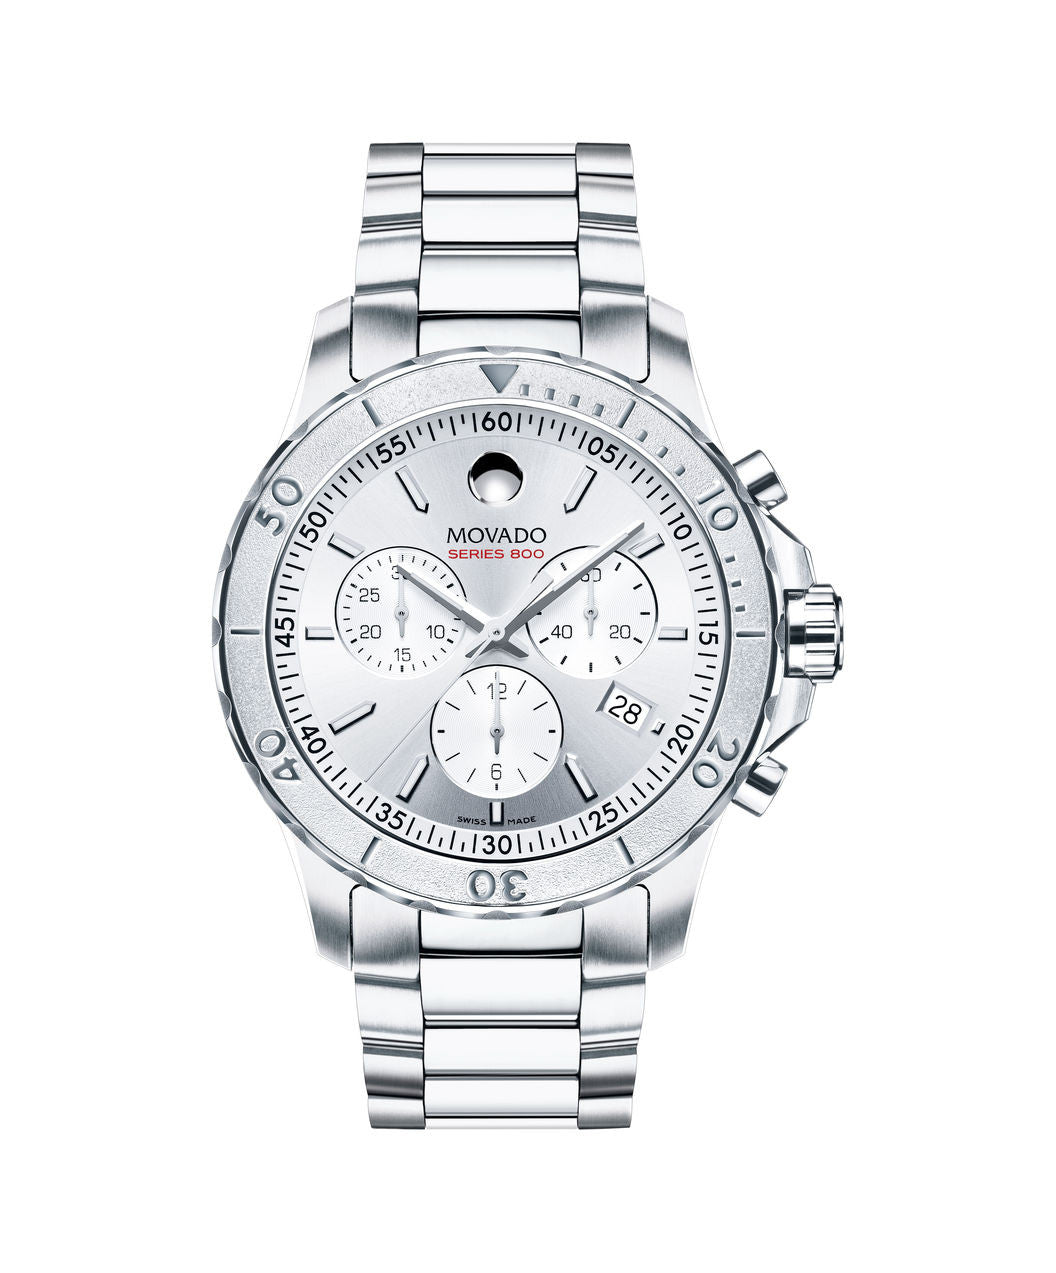 Movado Men's Series 800 Chronograph Watch, 42 mm Performance Steel 2600111 - Arnik Jewellers